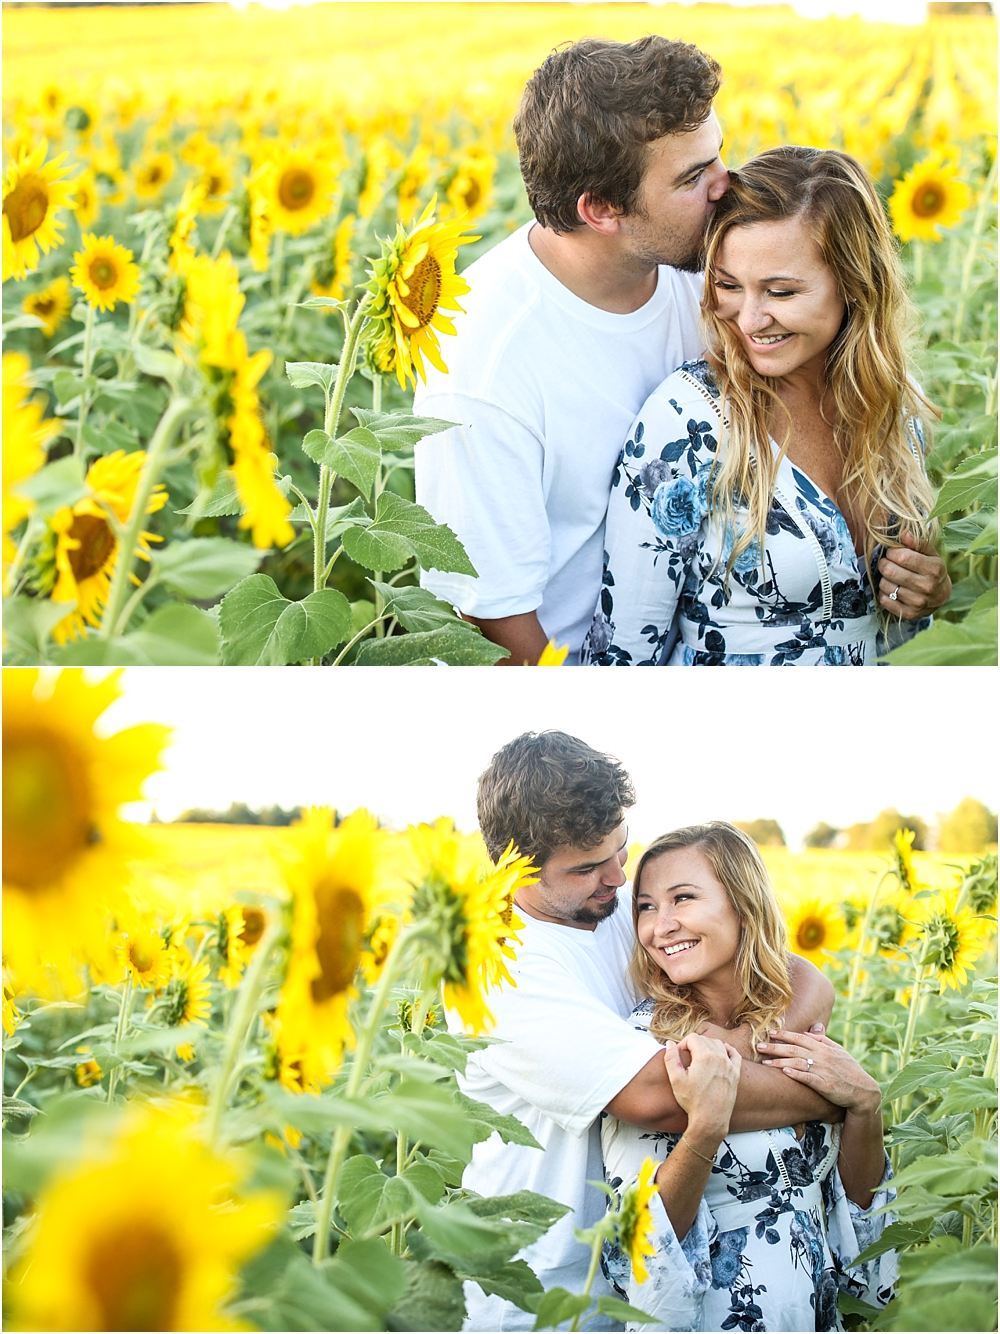 Sydney James Engagement Session with Horses Living Radiant Photography photos_0022.jpg